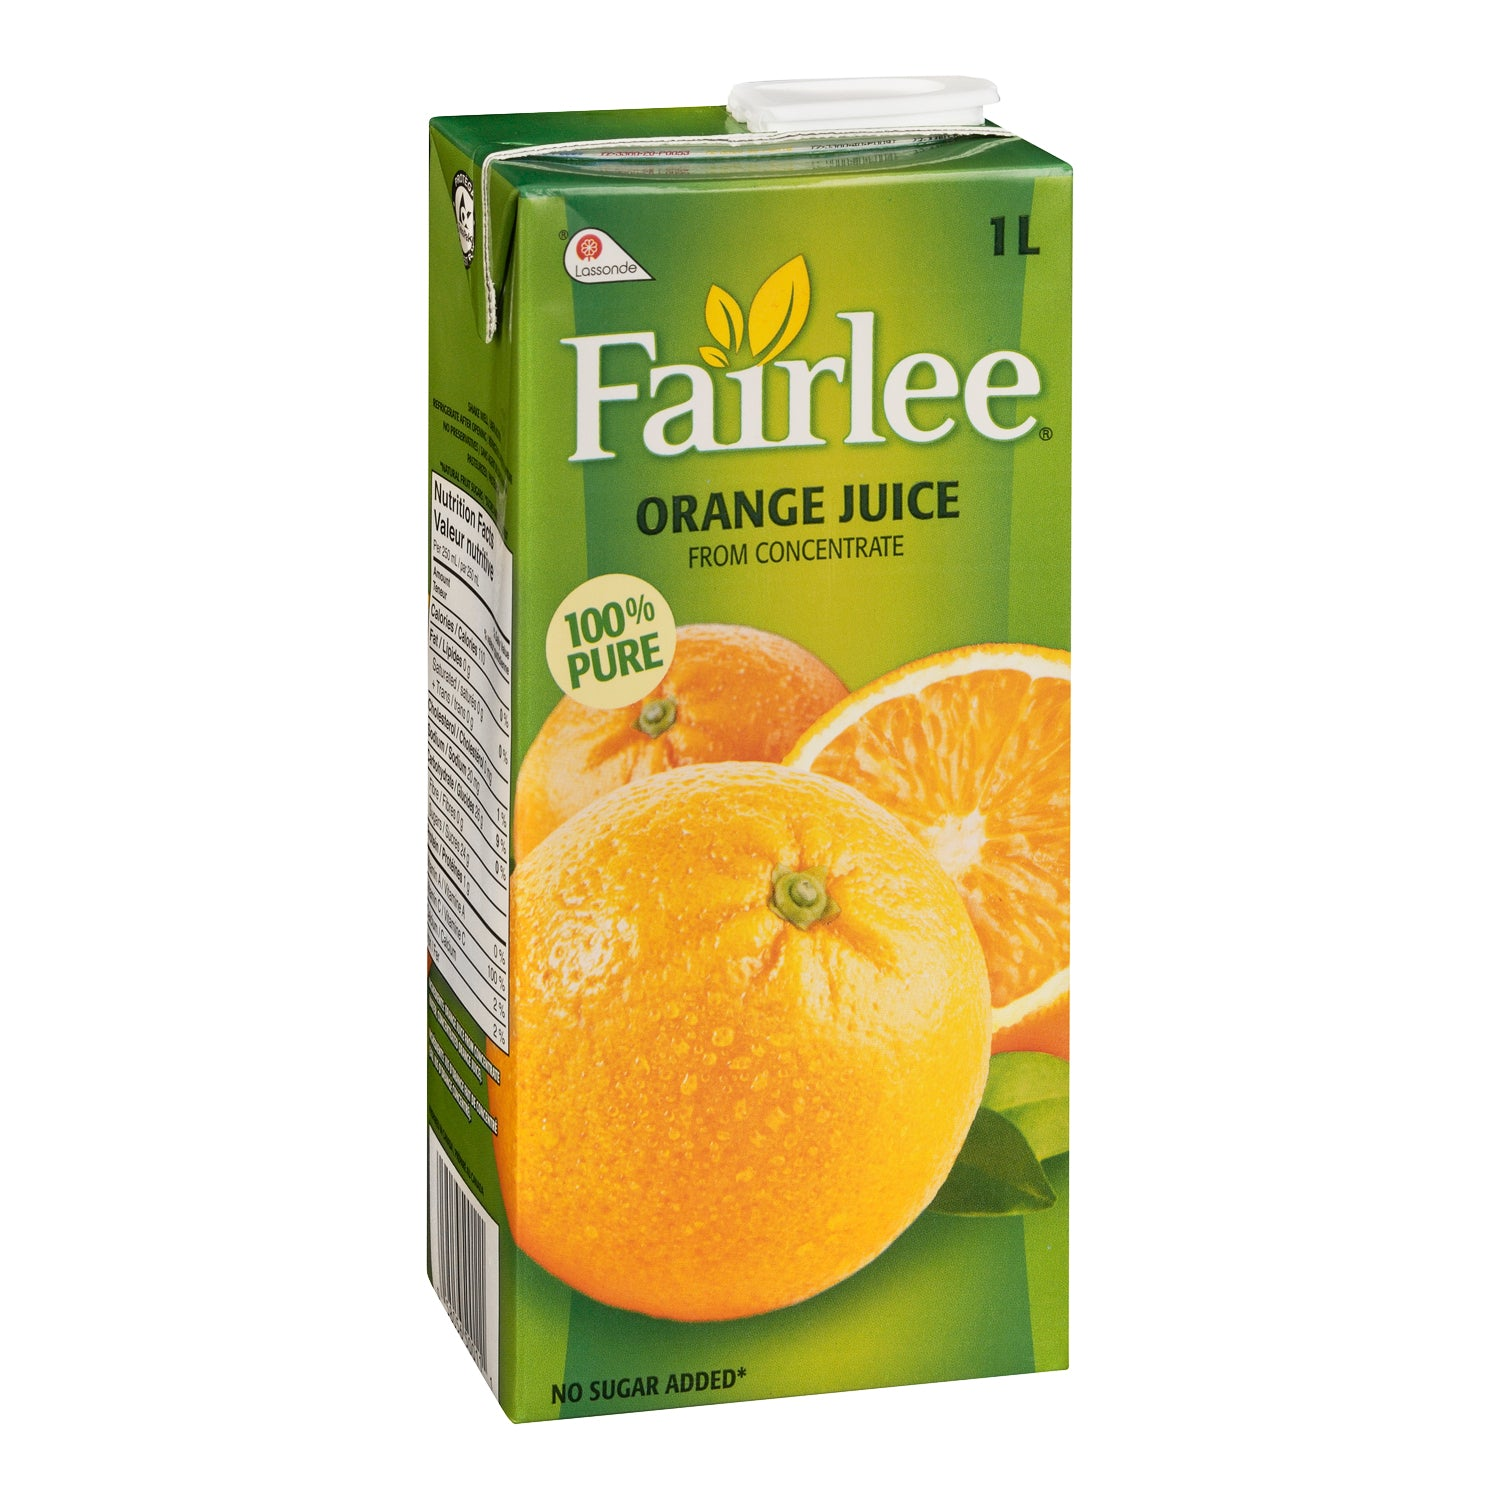 Fairlee Orange Juice Tetra Pack 1 L - 12 Pack [$2.08/each]